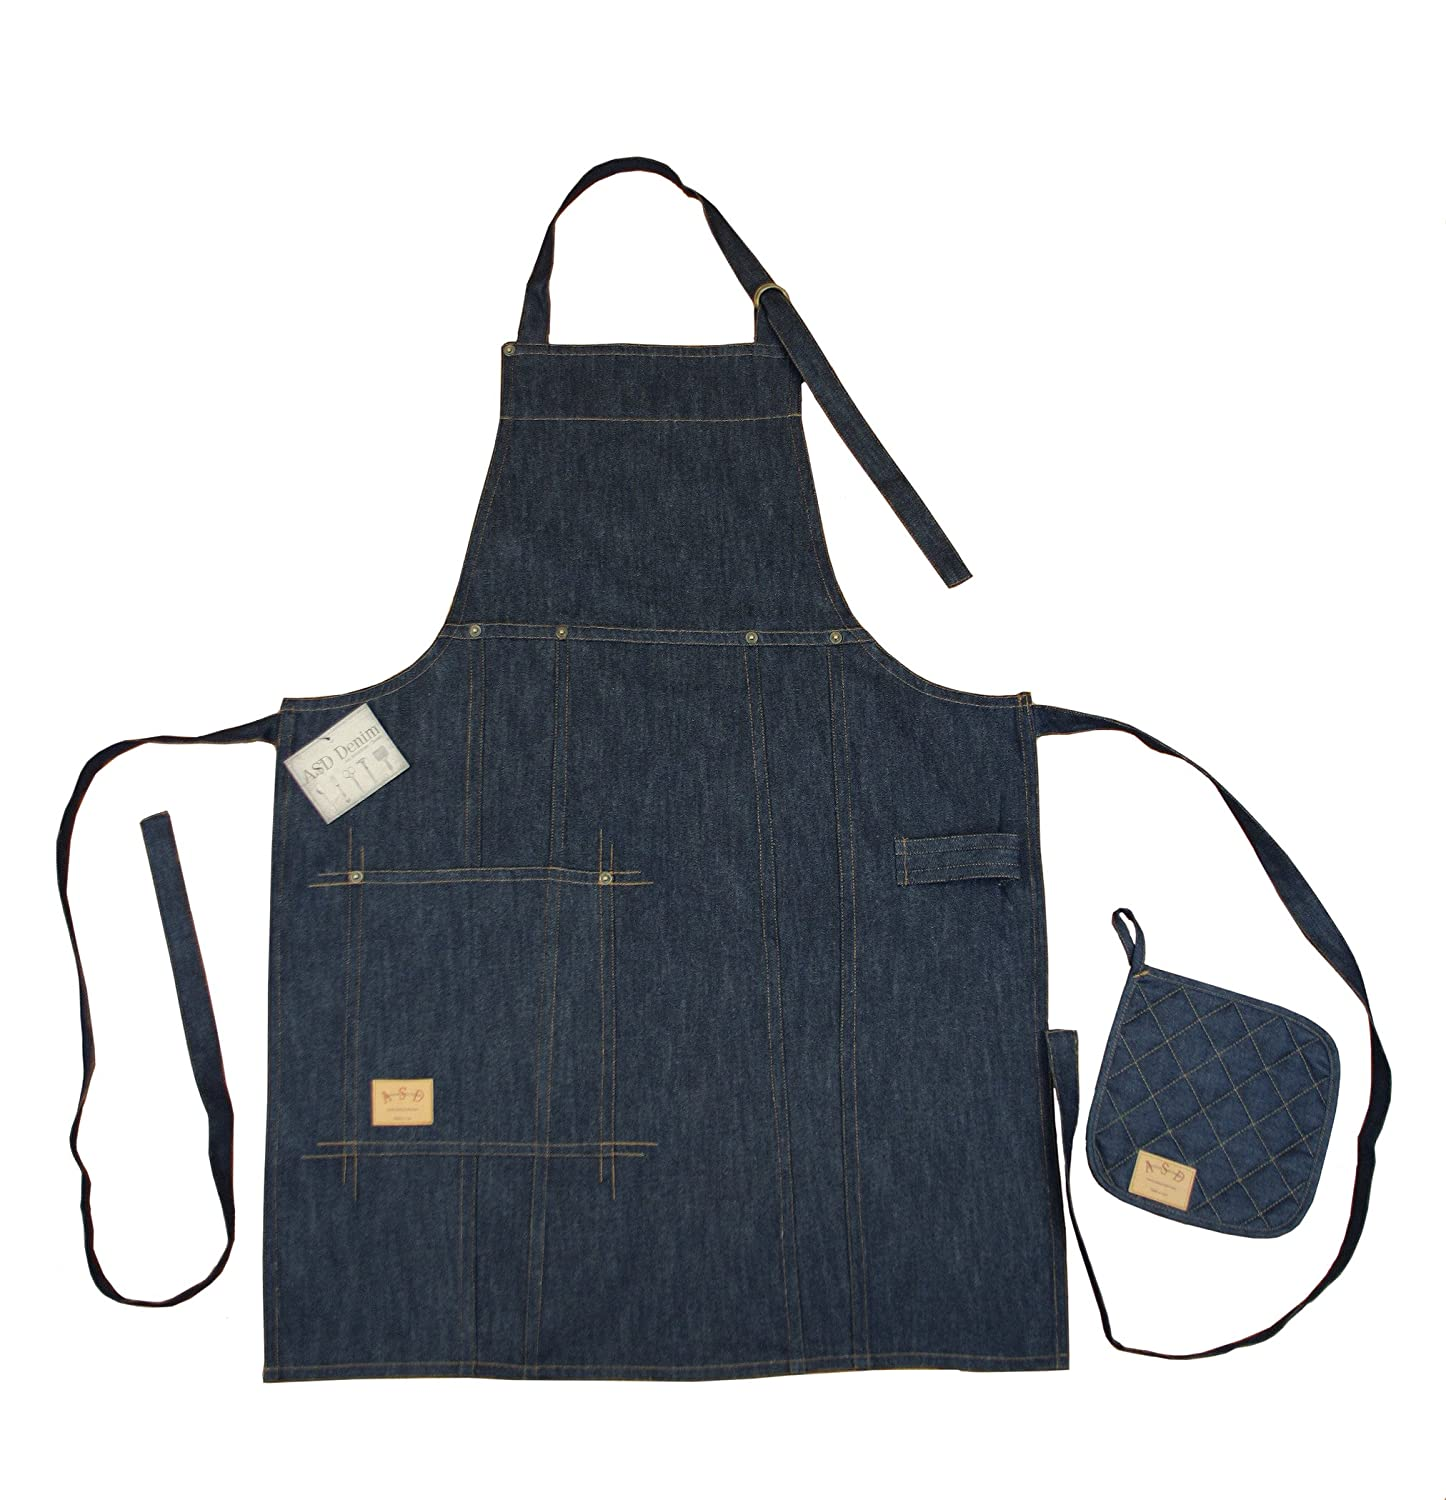 ASD Living MA-905 Vintage Draper Bib Apron and Pot Holder Set, Indigo, 91.44x68.58x0.63 cm